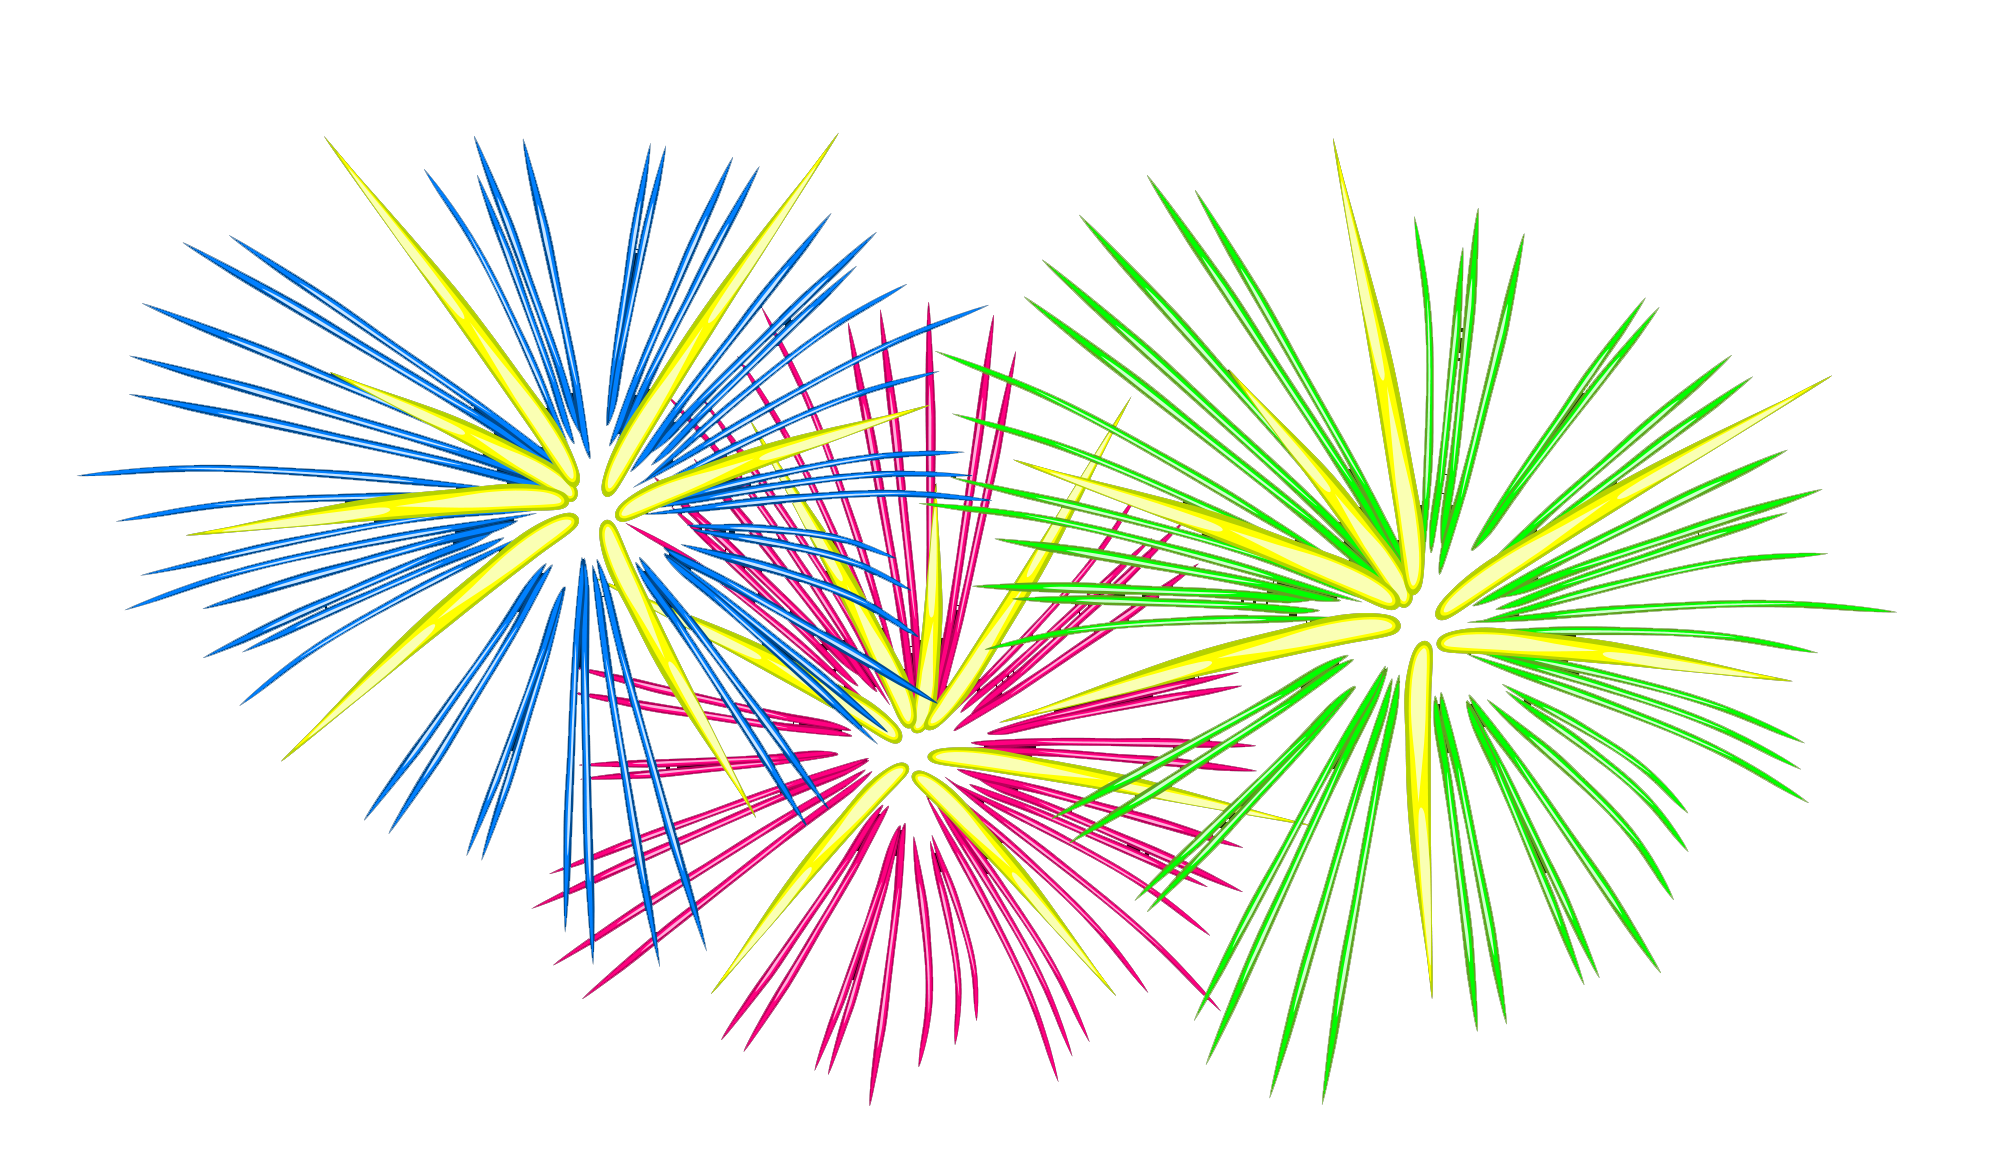 Description Fireworks 2 Png-Description Fireworks 2 Png-3